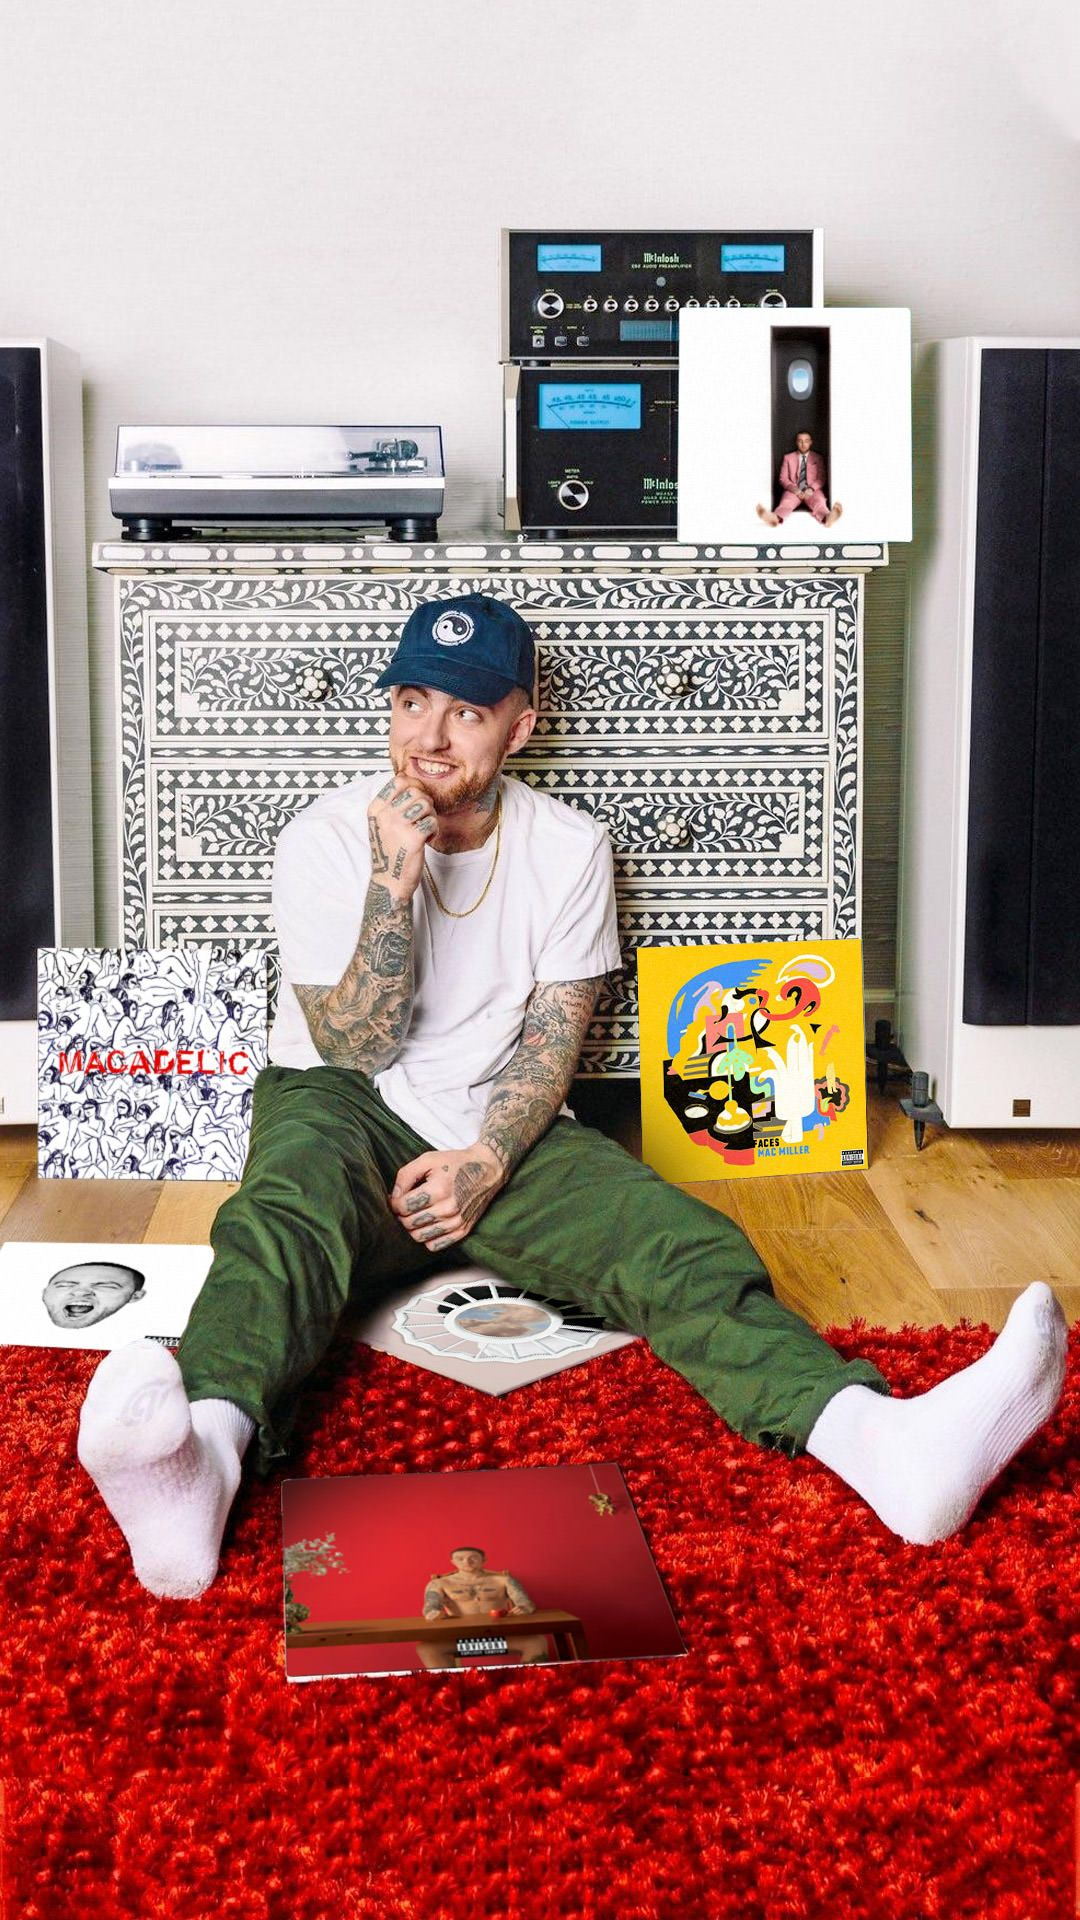 Mac Miller is the Face of HipHop for 2018 TIMELESS